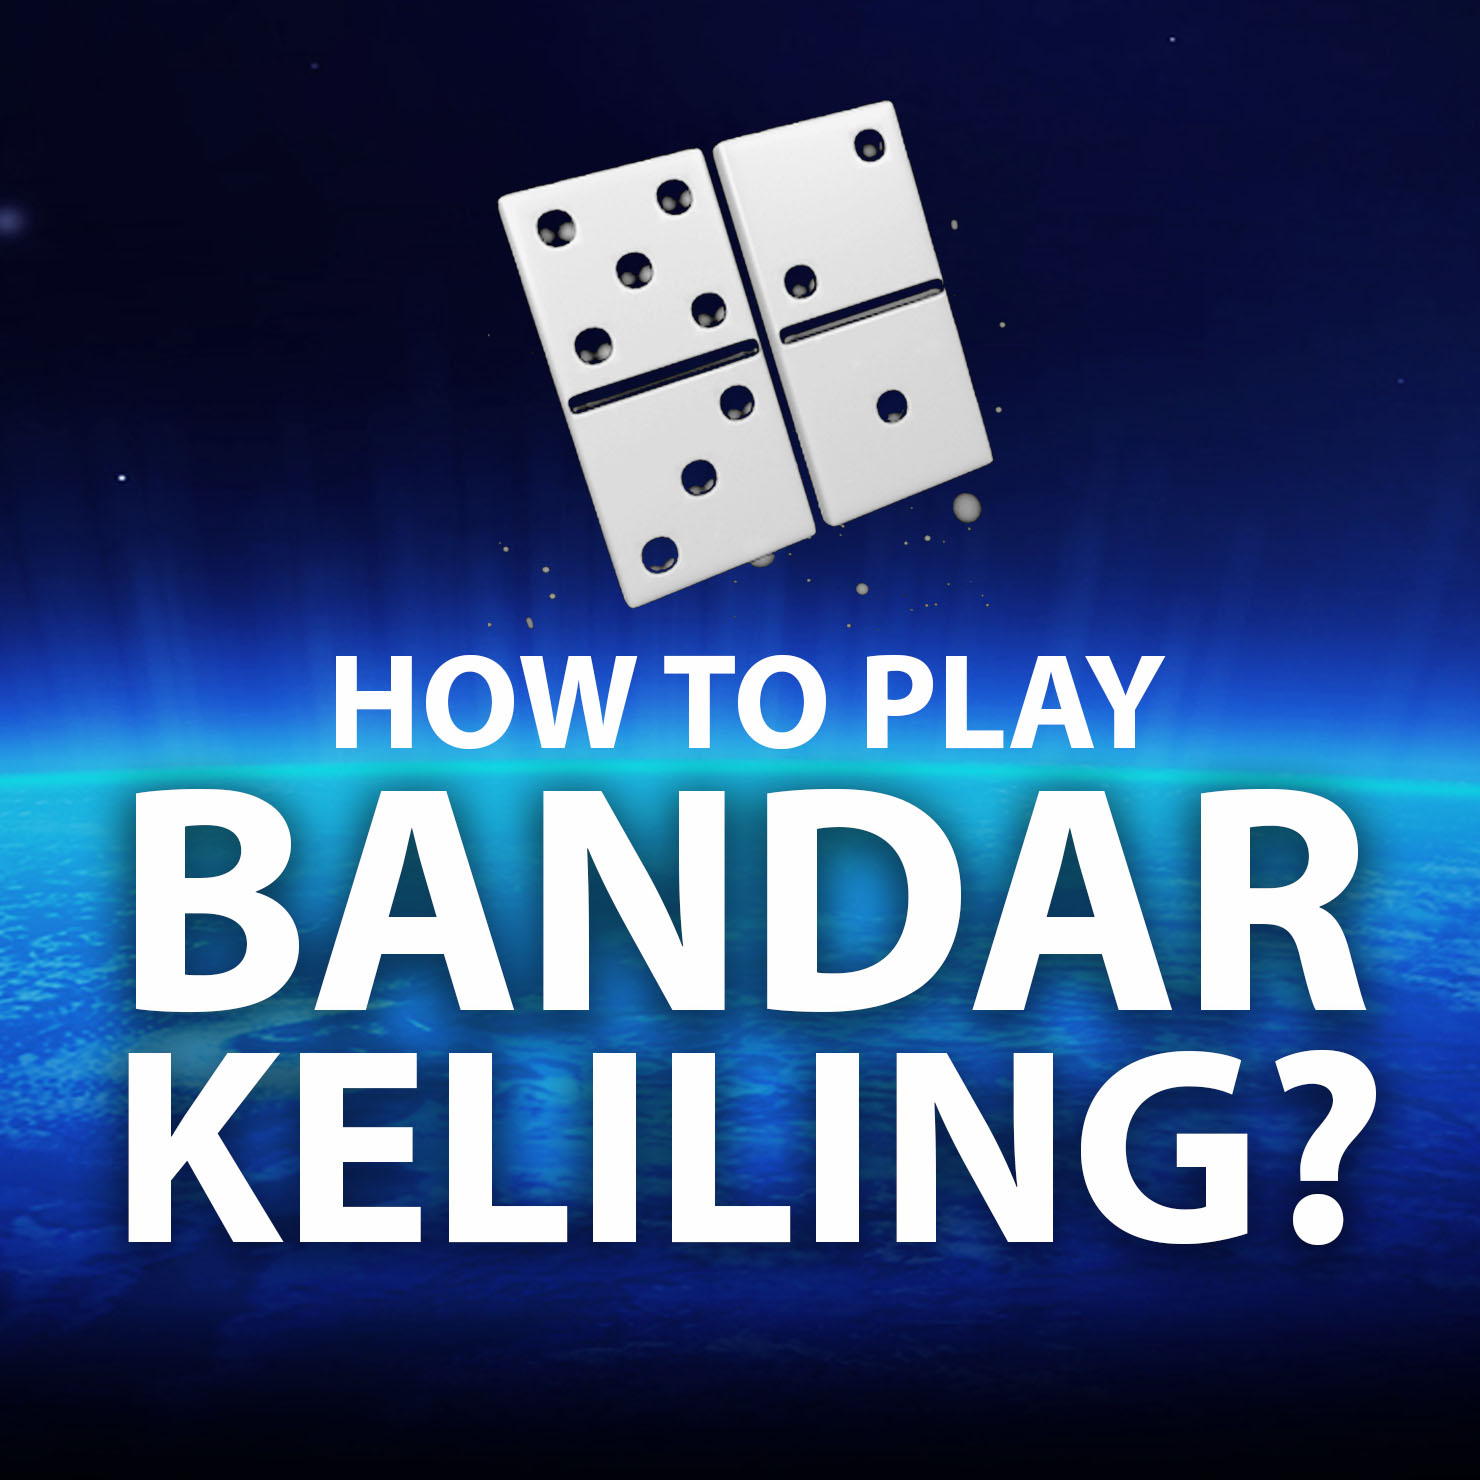 How To Play Bandar Keliling